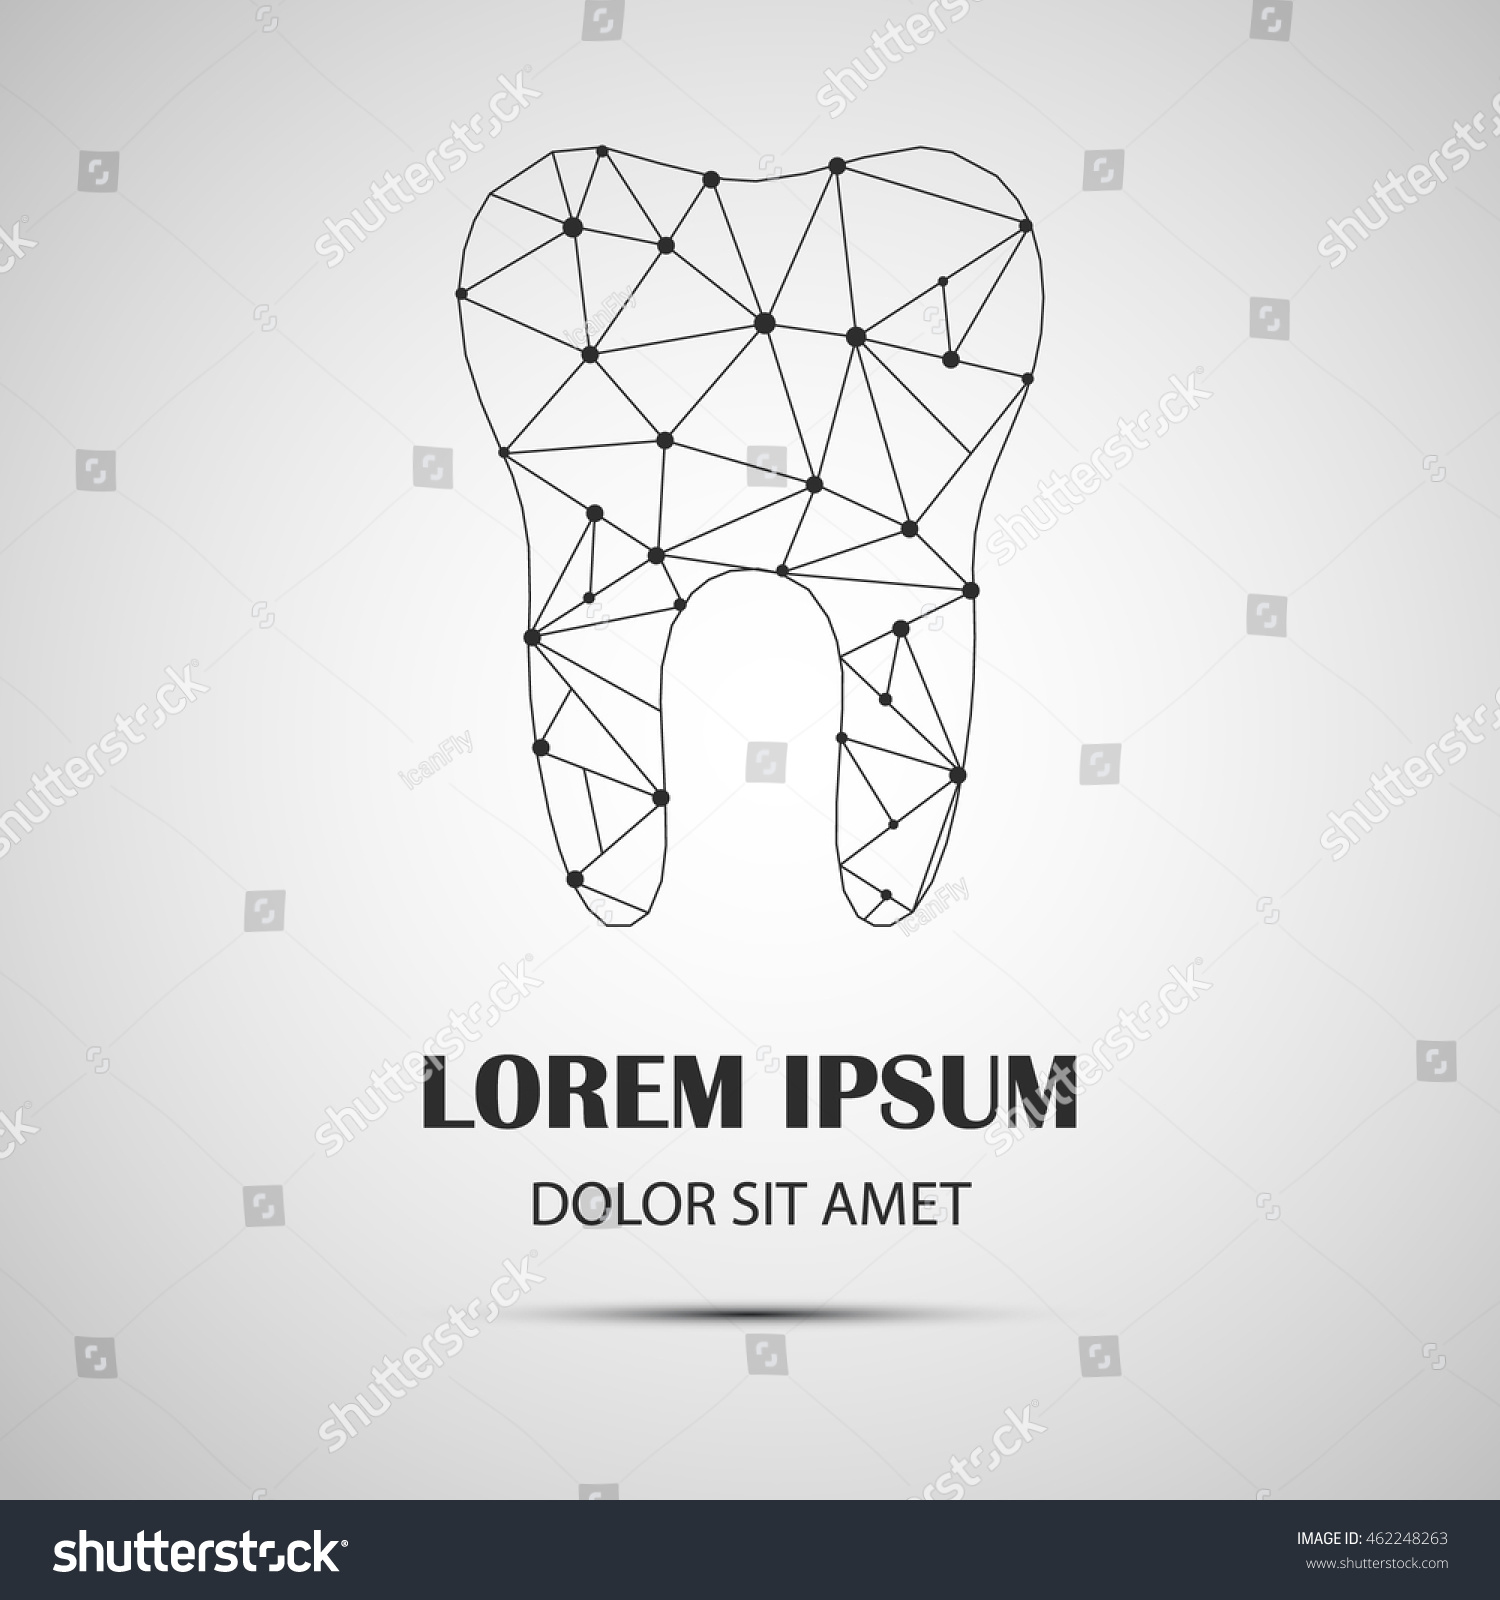 Tooth logo.Dental logo.Dental Logo Template.Polygonal-low poly style thin line icon.tooth dental logo design.Silhouettes of Tooth.Logo for Dental Clinic.Stomatology.Dental clinic vector icon.Dent Logo